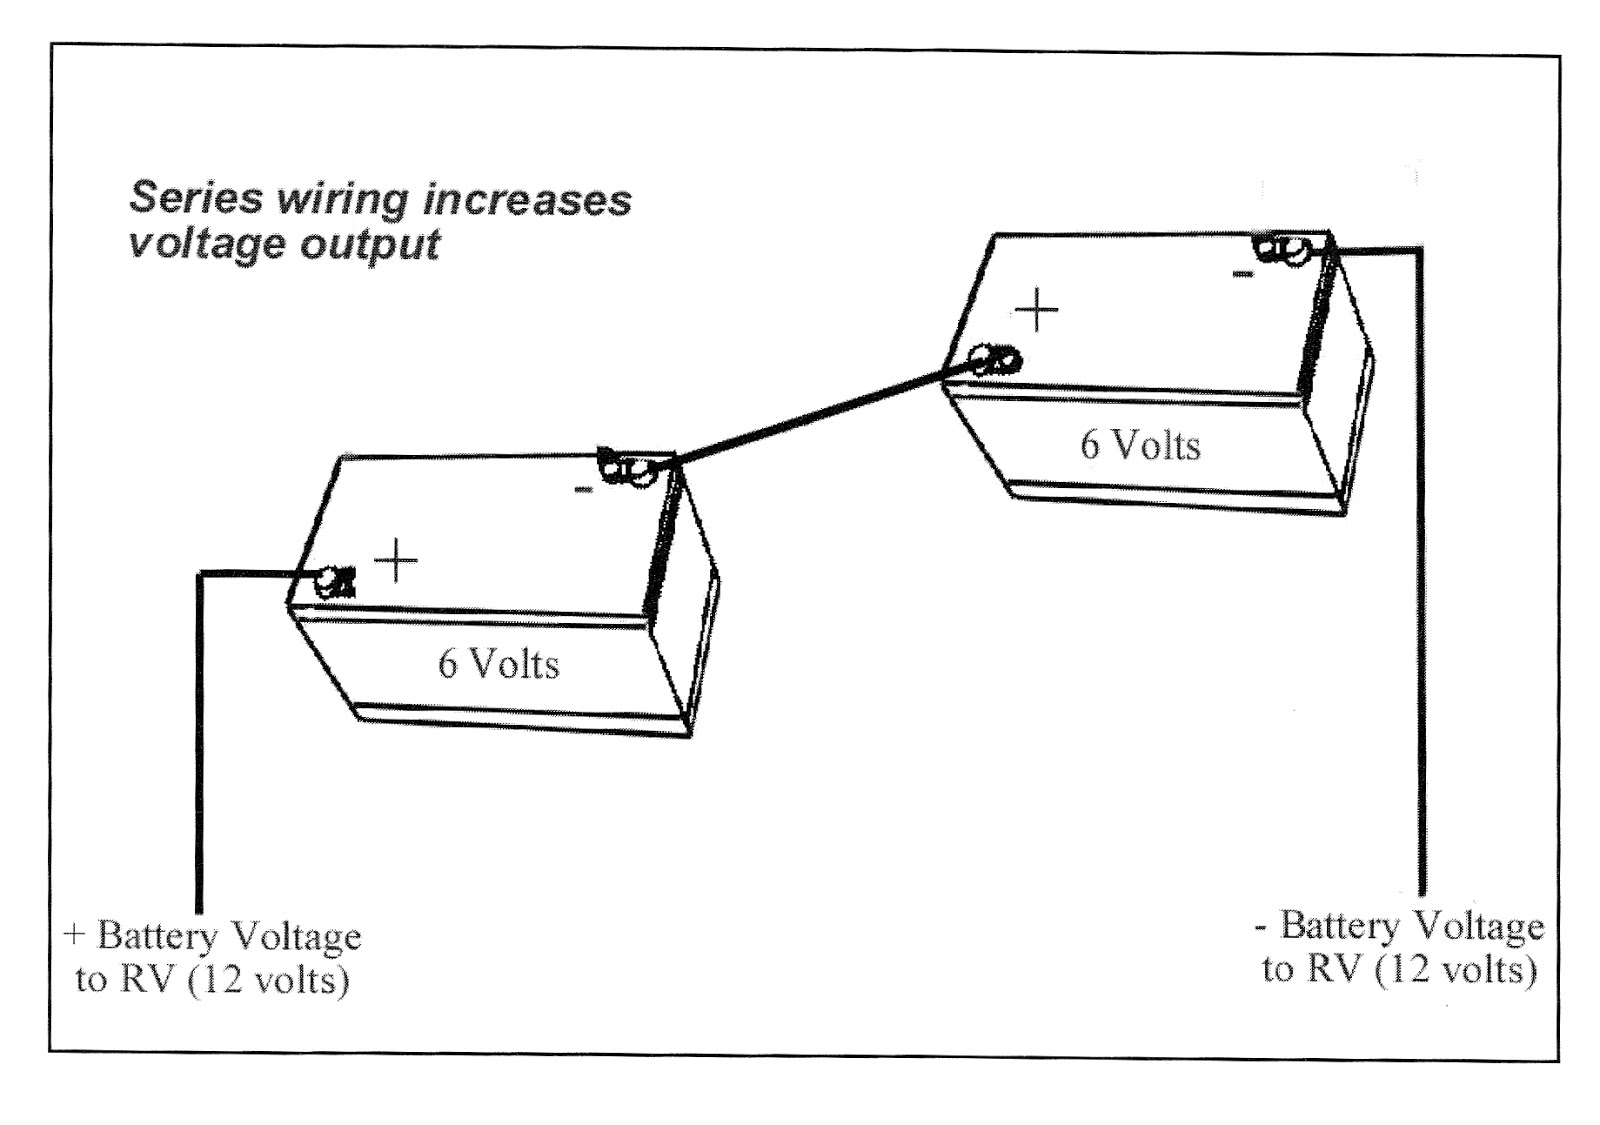 battery+series+wiring+diagram penny's tuppence (2 cents in brit) november 2012 Light Switch Wiring Diagram at alyssarenee.co